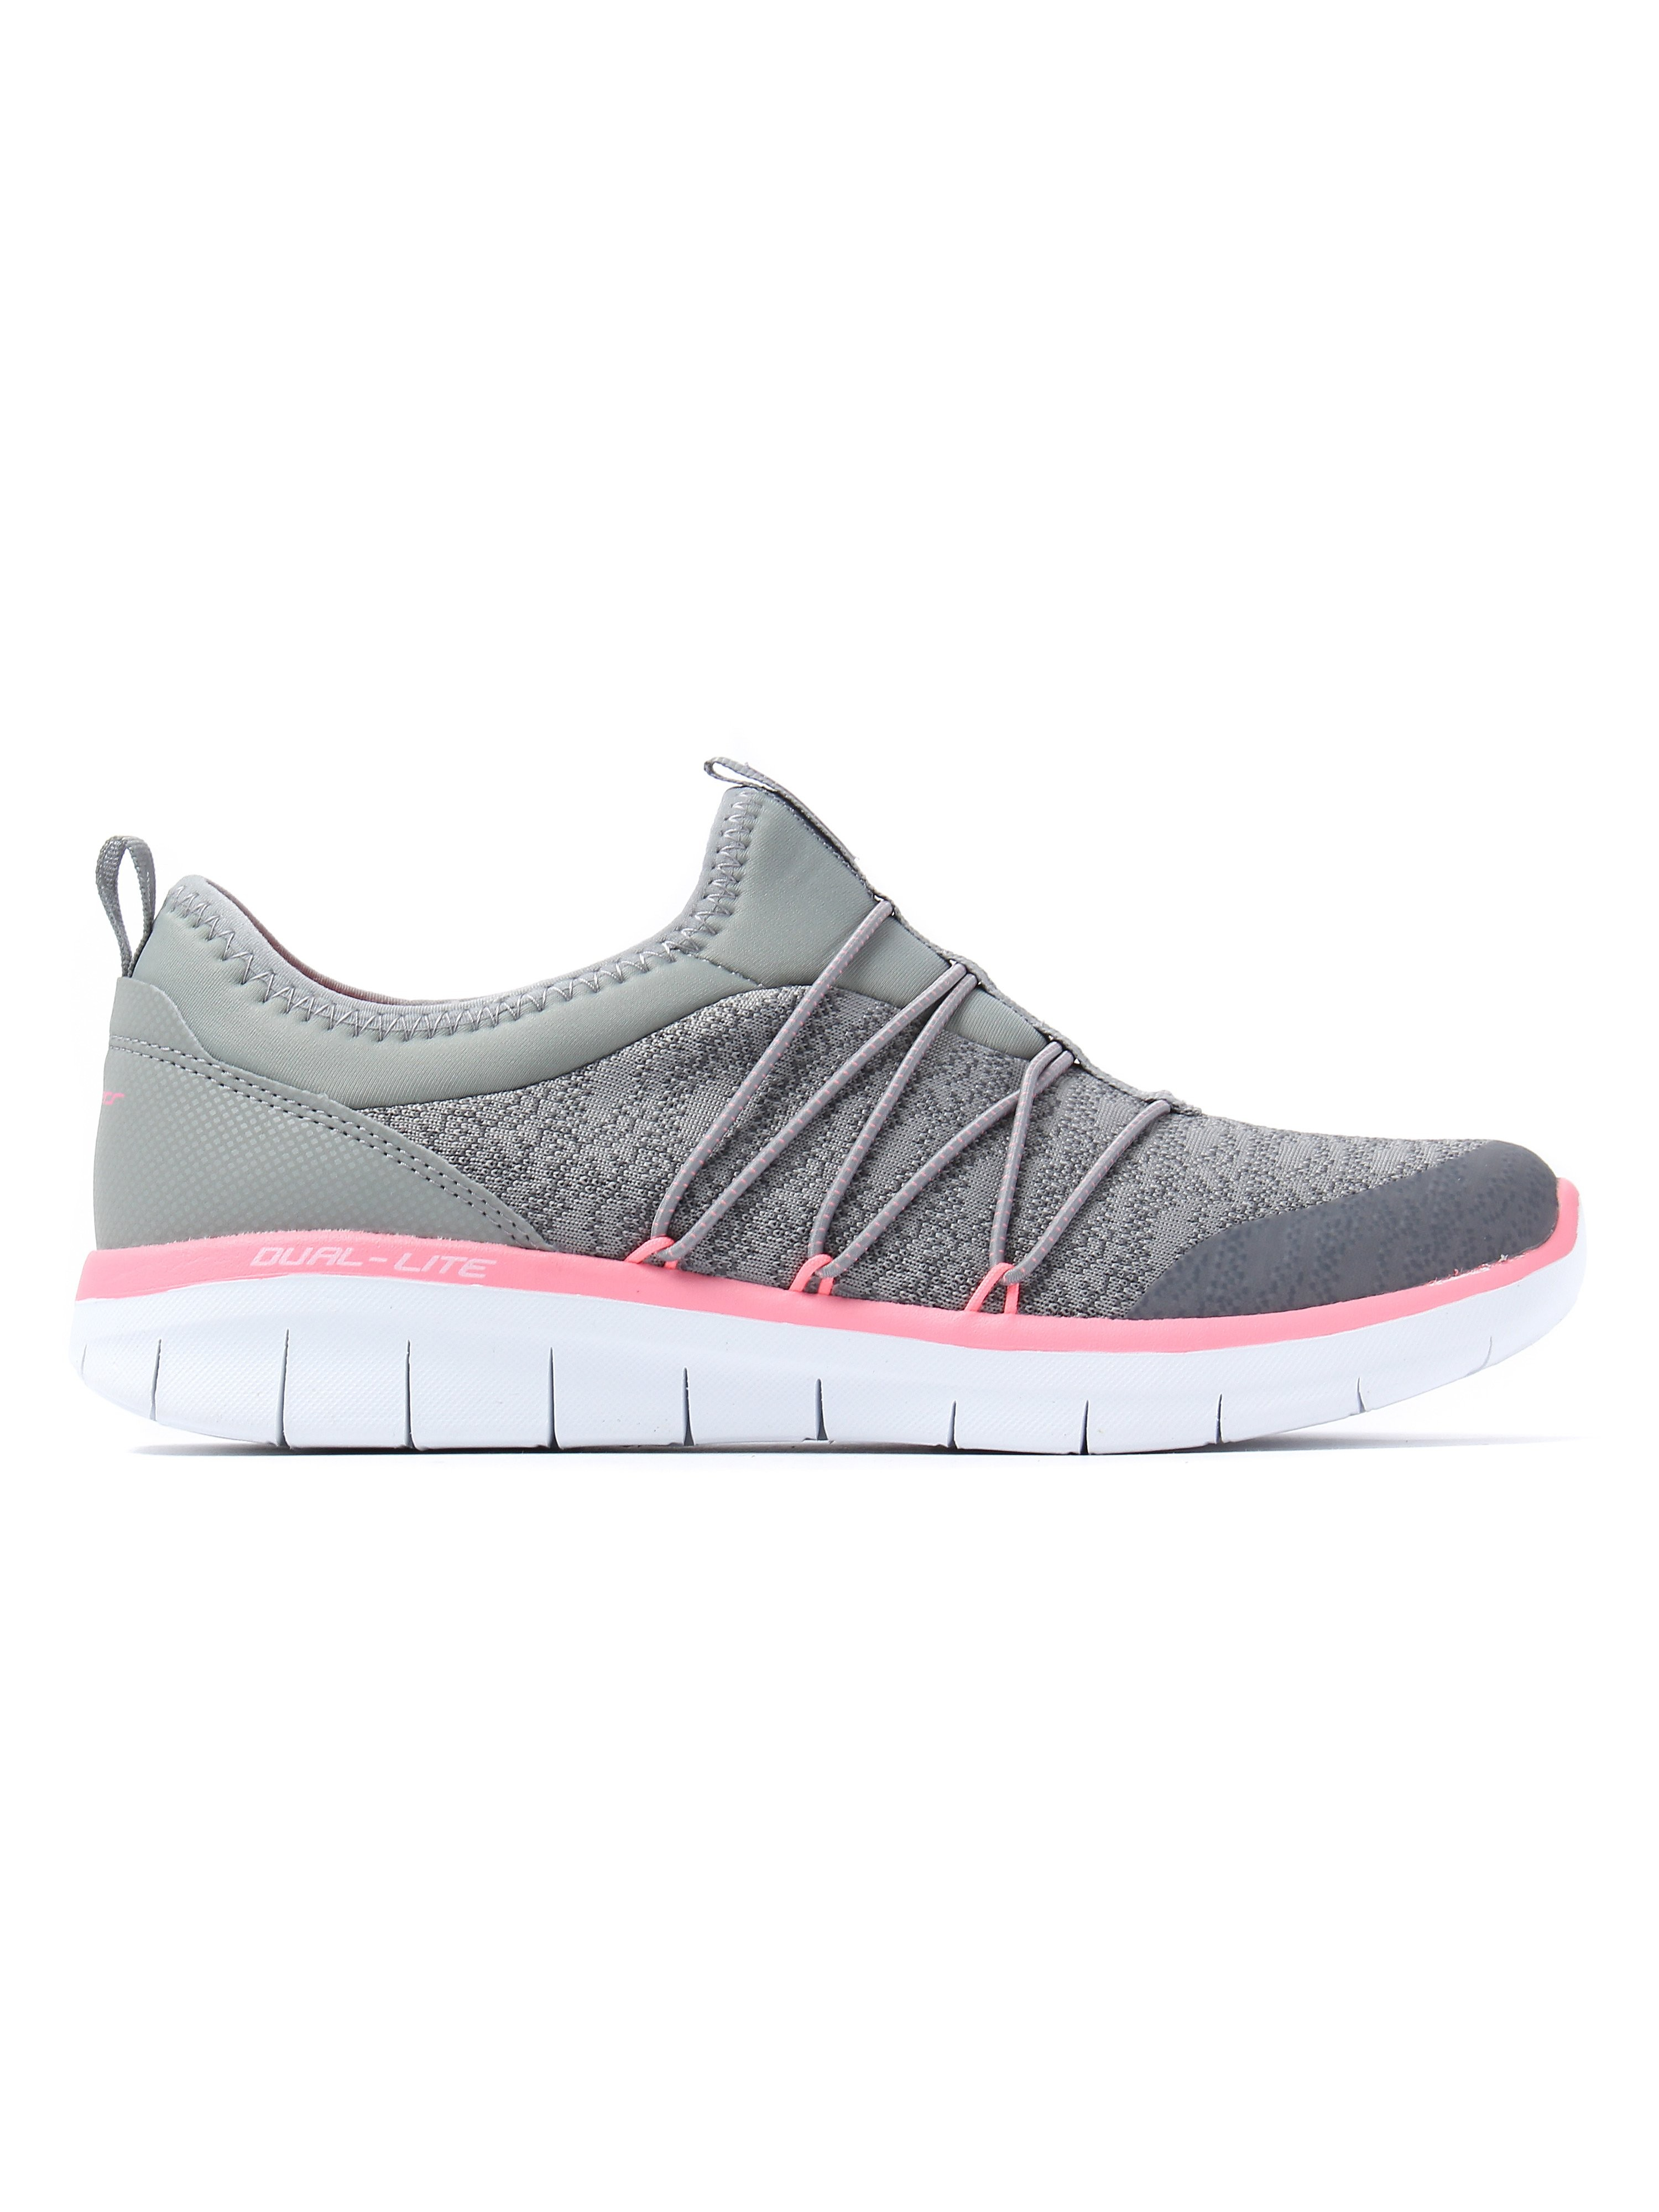 Skechers Women's Synergy 2.0 Simply Chic Trainers - Grey / Pink